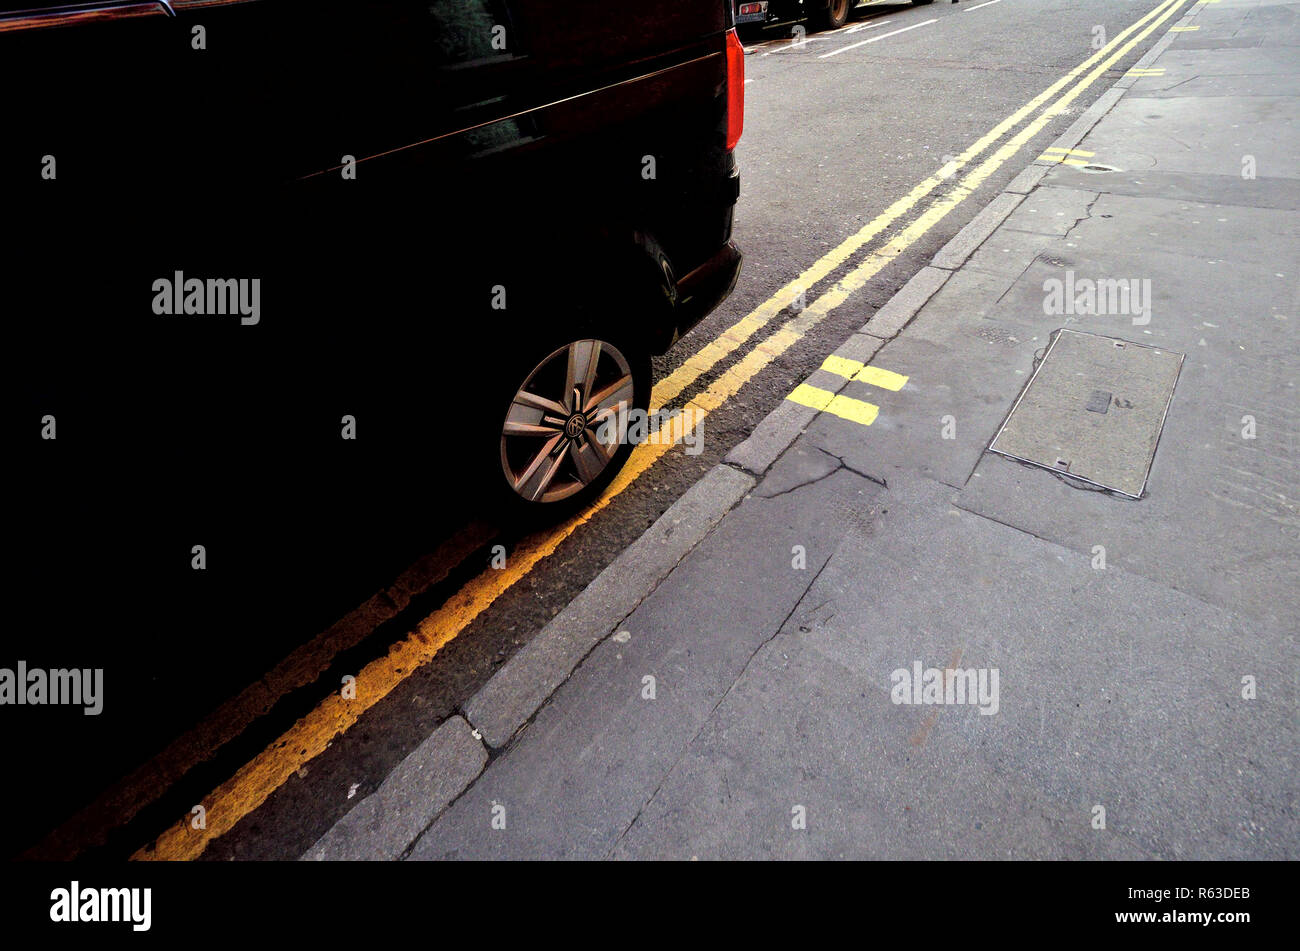 Van parked on a double yellow line, London, England, UK. - Stock Image